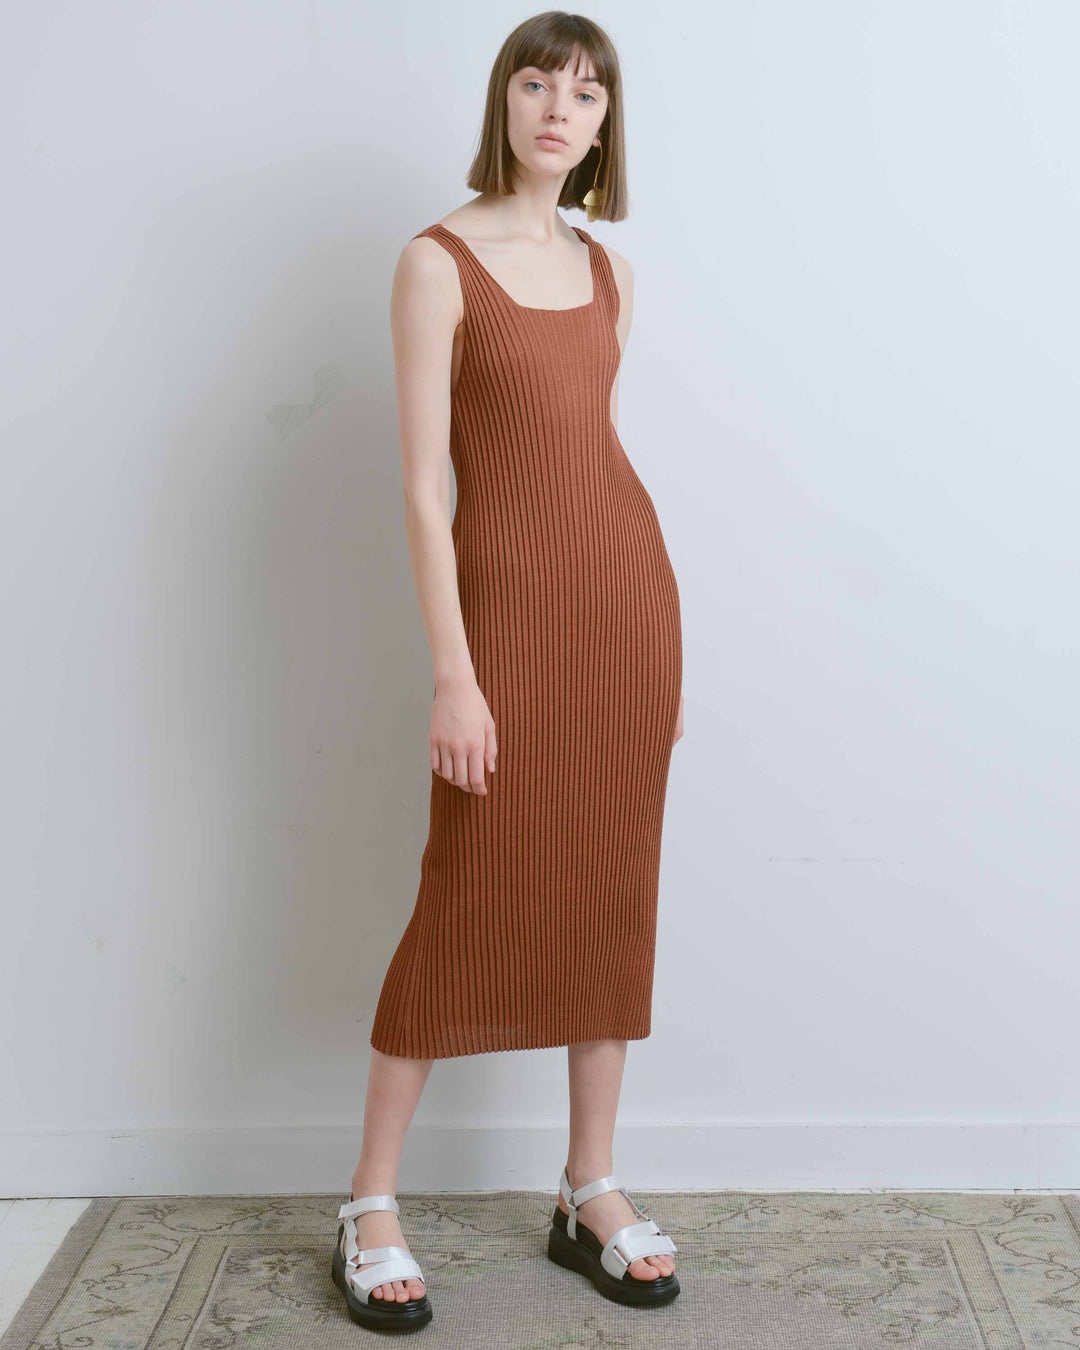 Brown Sleeveless Ribbed Knit Dress